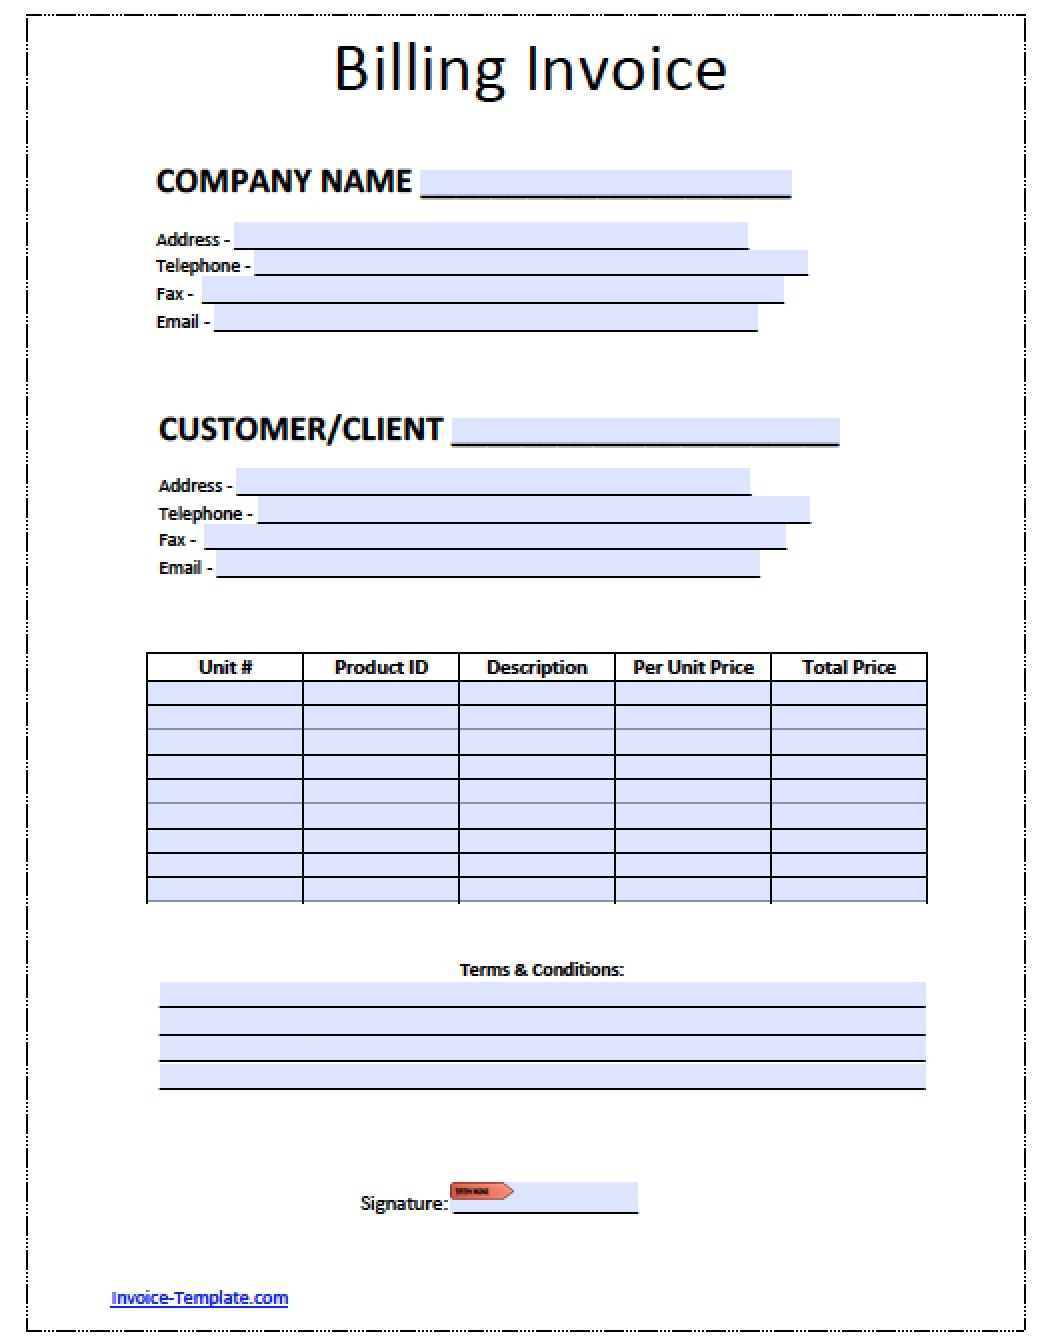 Free Billing Invoice Template | Excel | Pdf | Word (.doc) Within Billing Invoice Sample